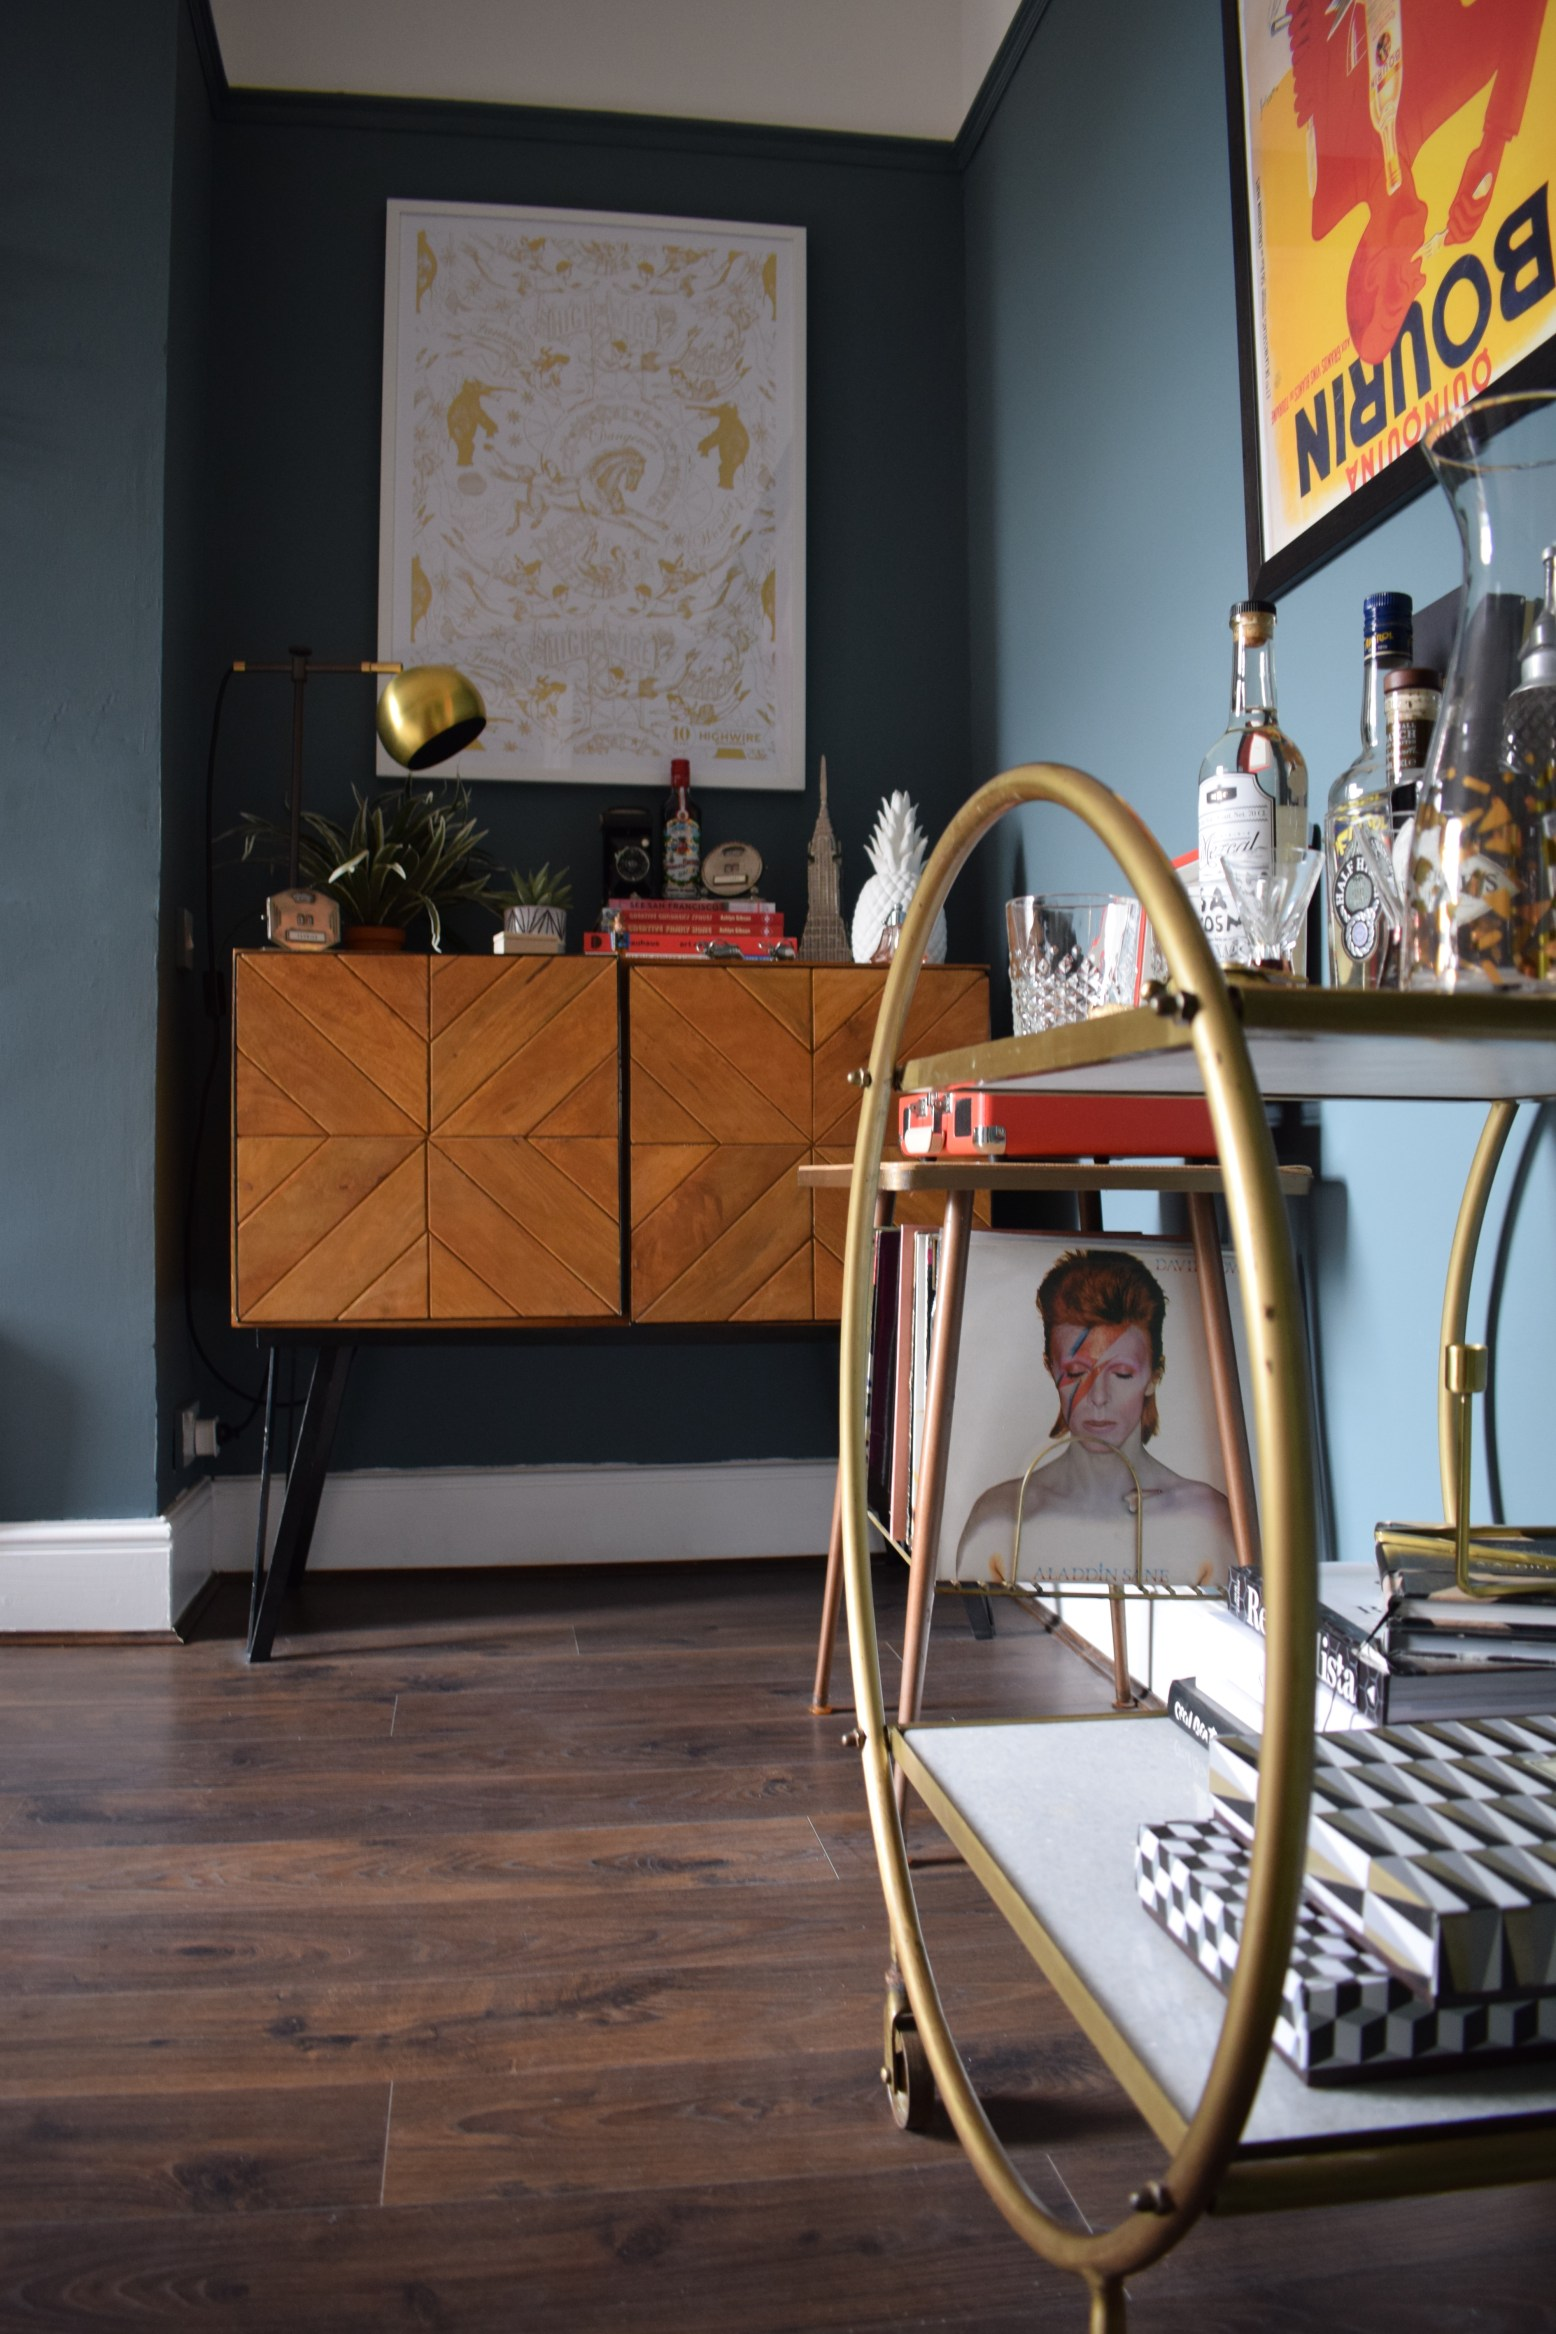 Eclectic-Modern-Bohemian-interior-decor-cocktail-trolley-vintage-record-stand-crossley-chevron-sideboard